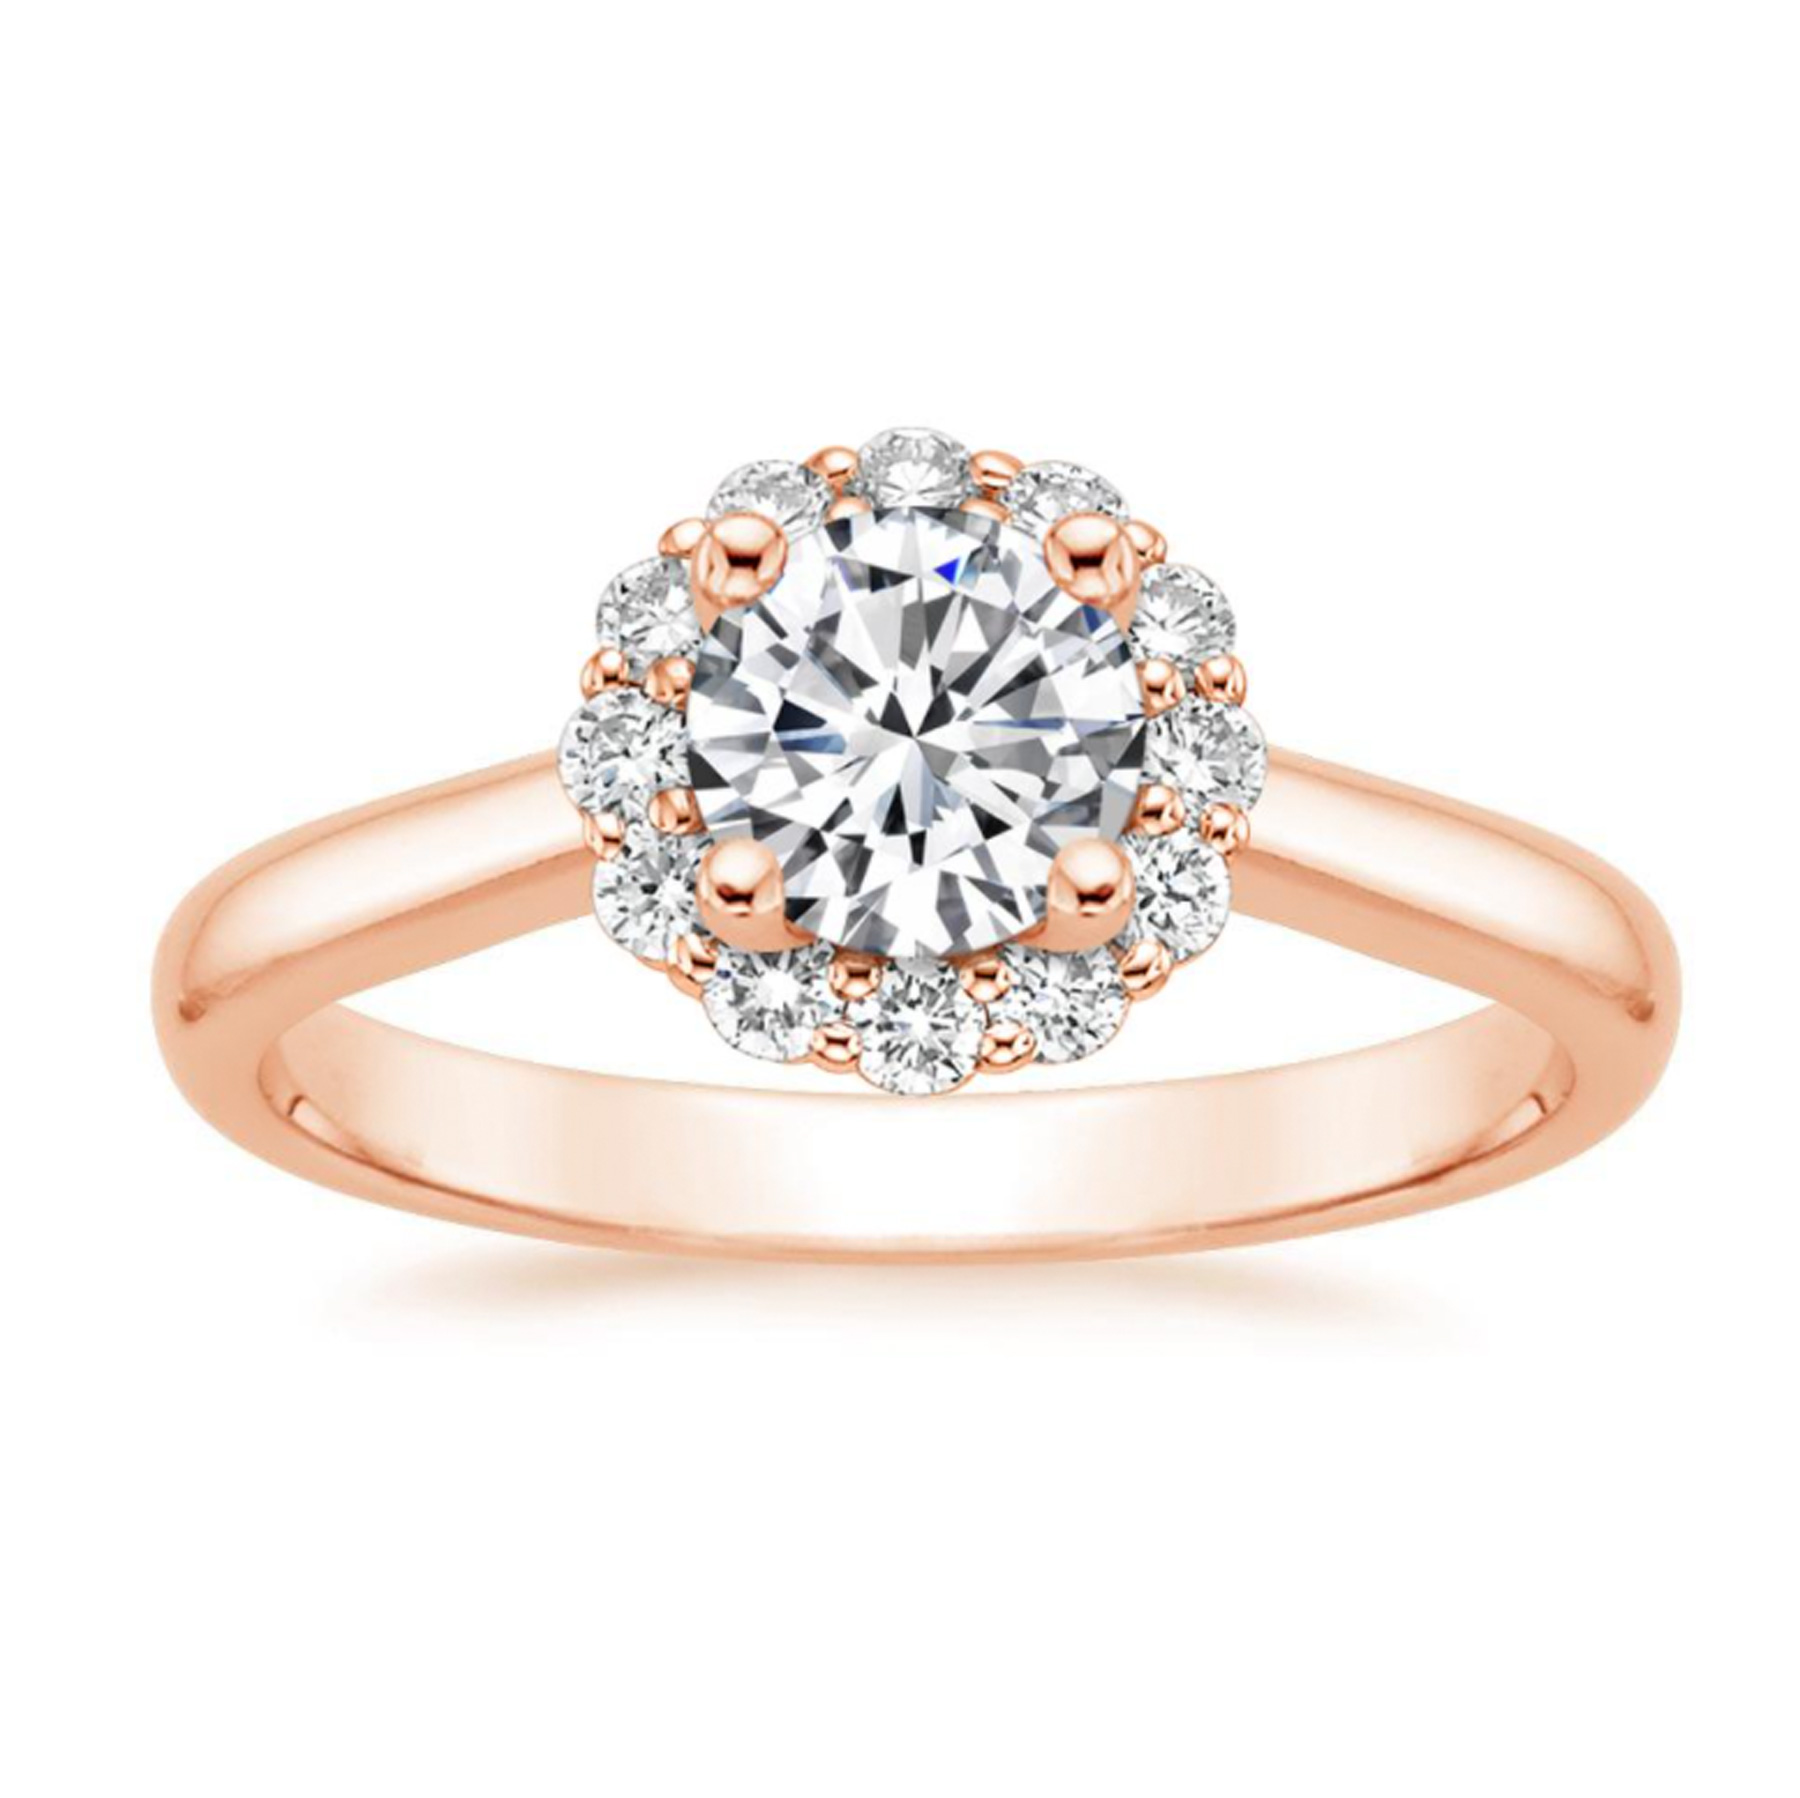 Brilliant Earth rose gold halo engagement ring